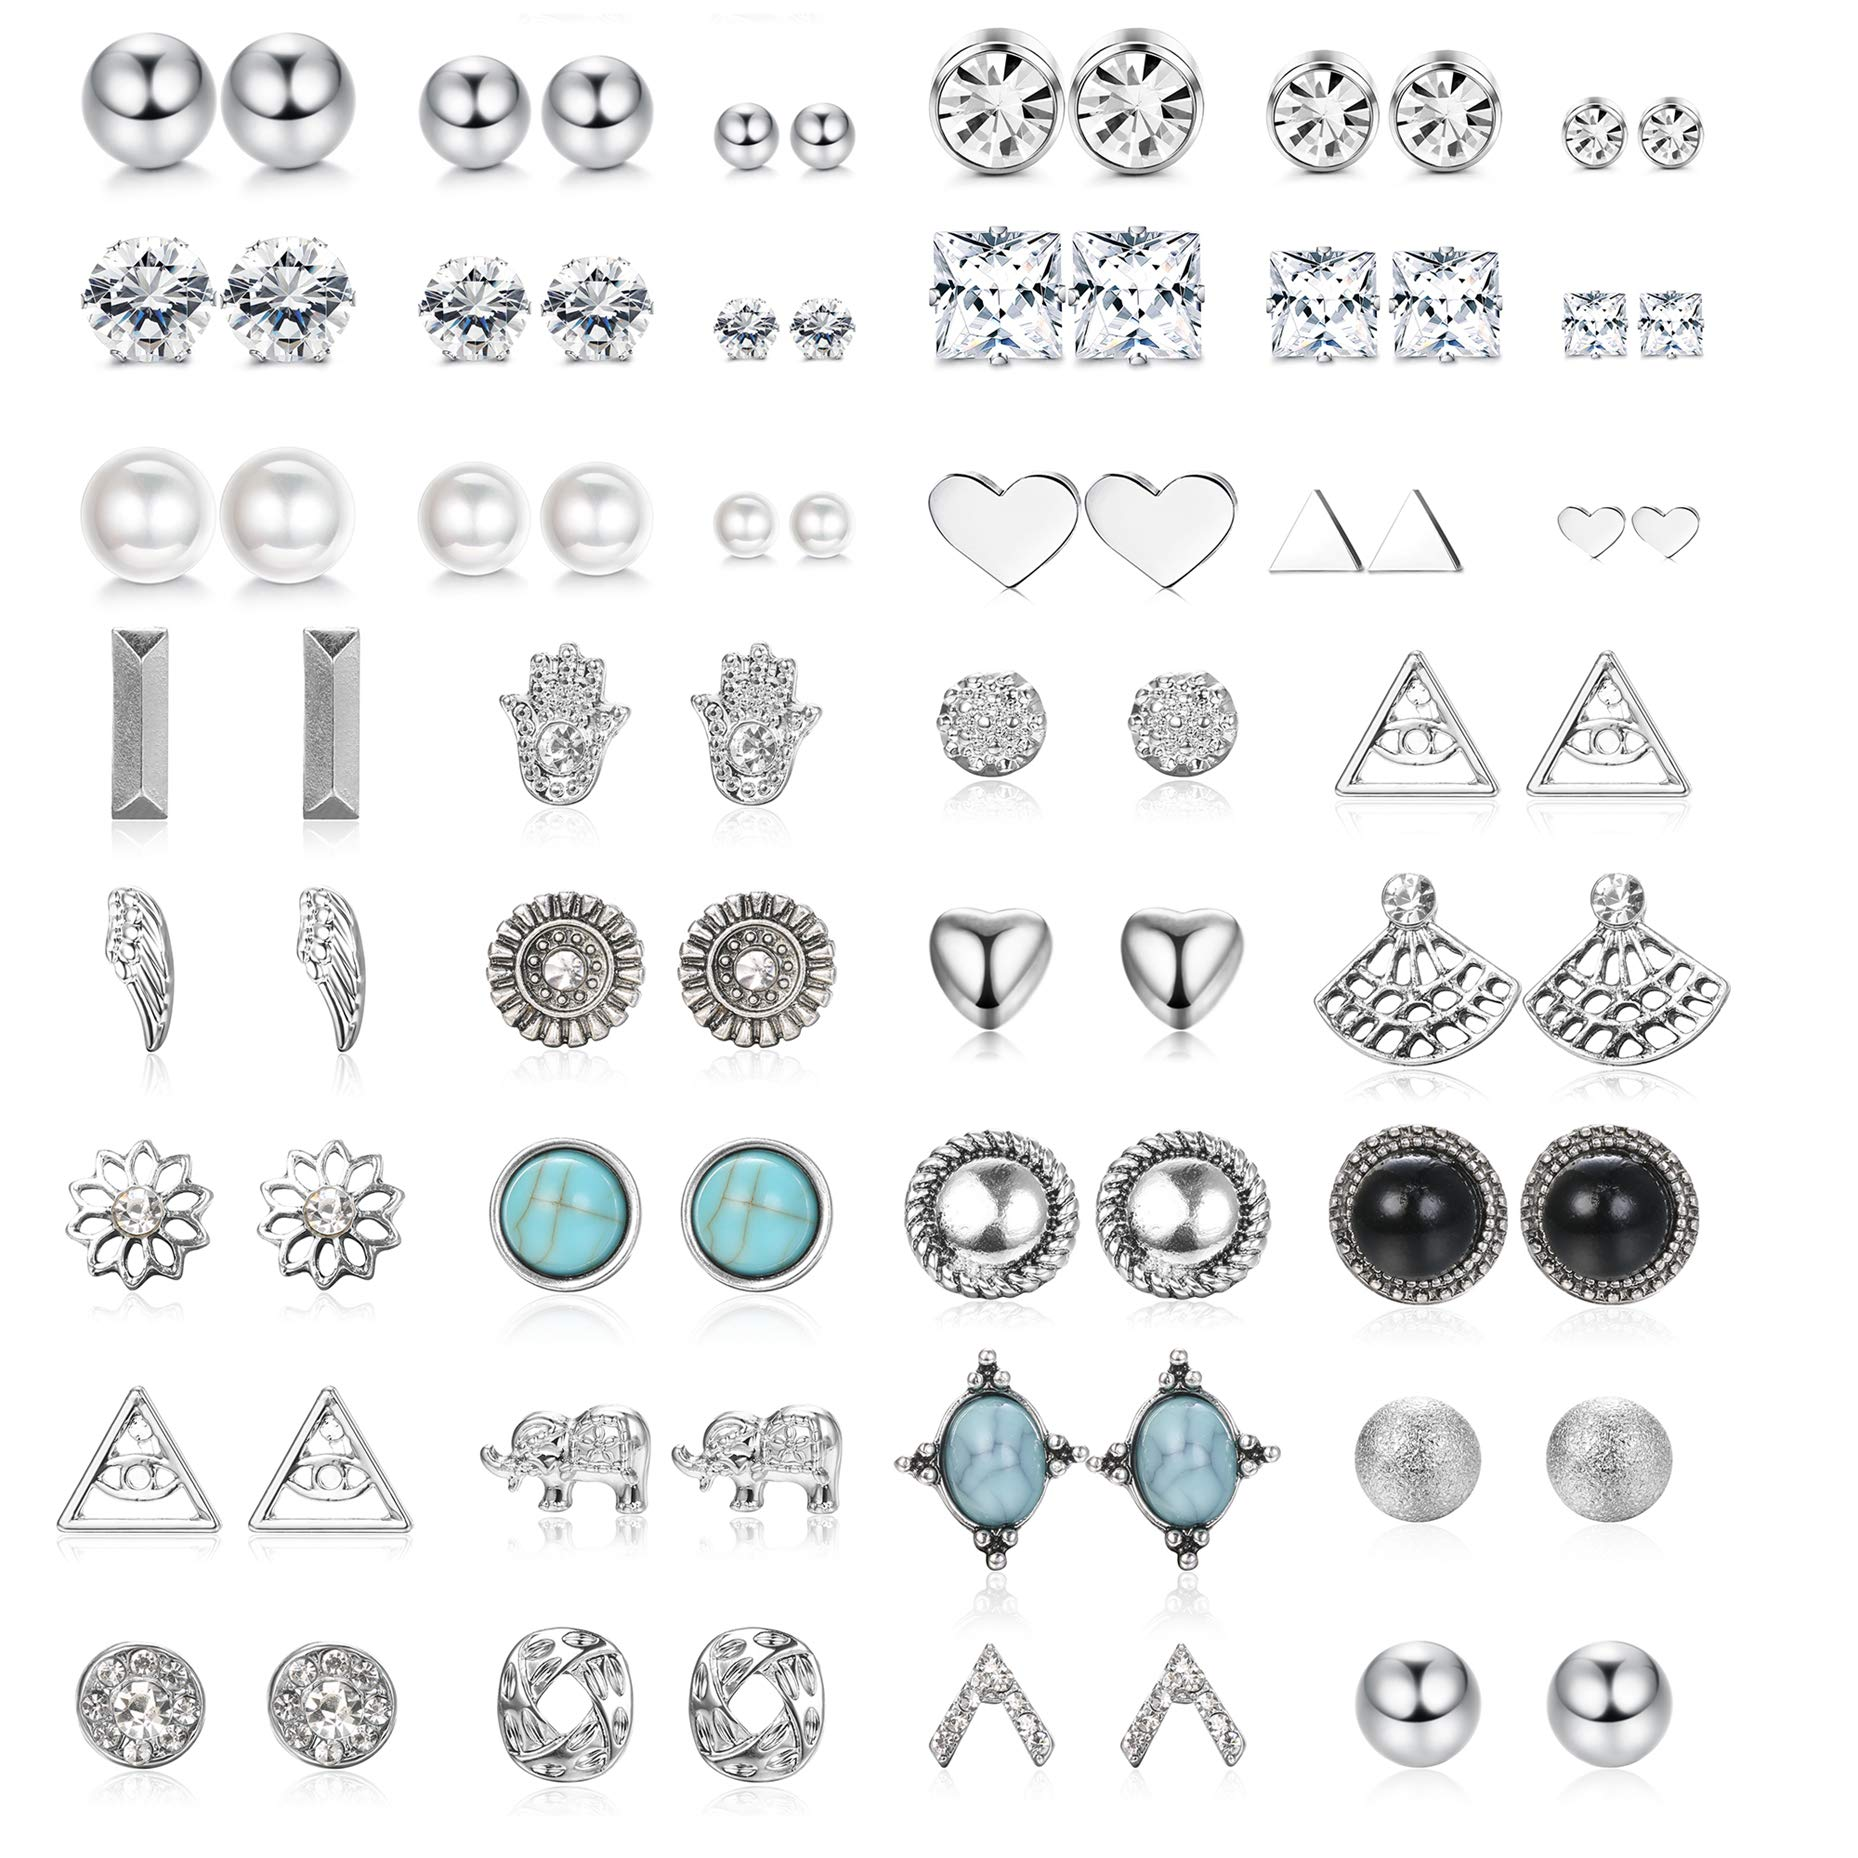 SAILIMUE 38 Pairs Stainless Steel Stud Earrings Geometric Earrings Set Heart Triangle Elephant Turquoise Flower Ball Pearl Clear CZ Earrings for Men Women Jewelry Set by SAILIMUE